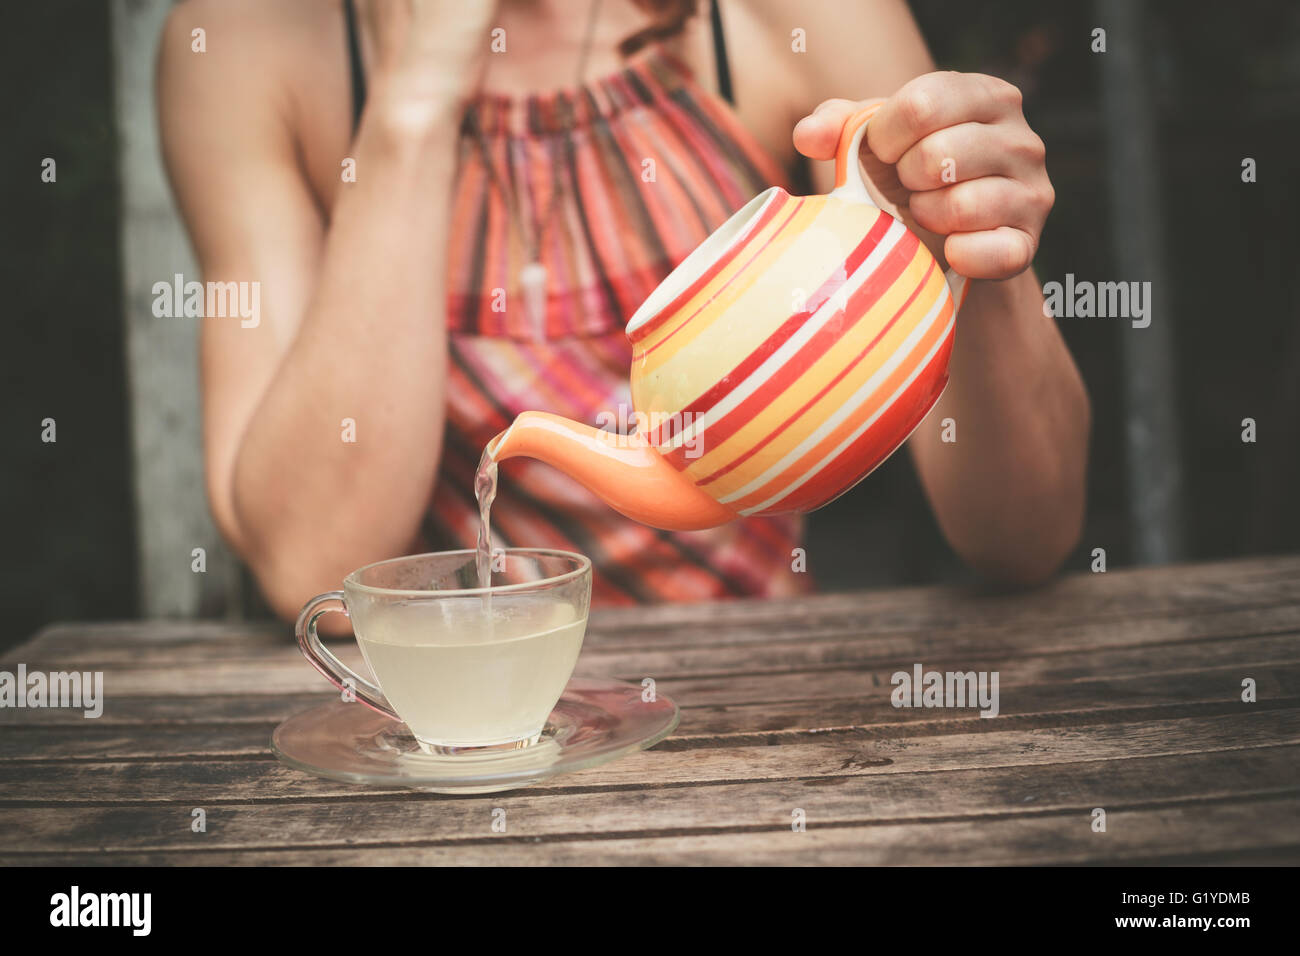 A young woman is sitting at a table and is pouring a cup of tea - Stock Image